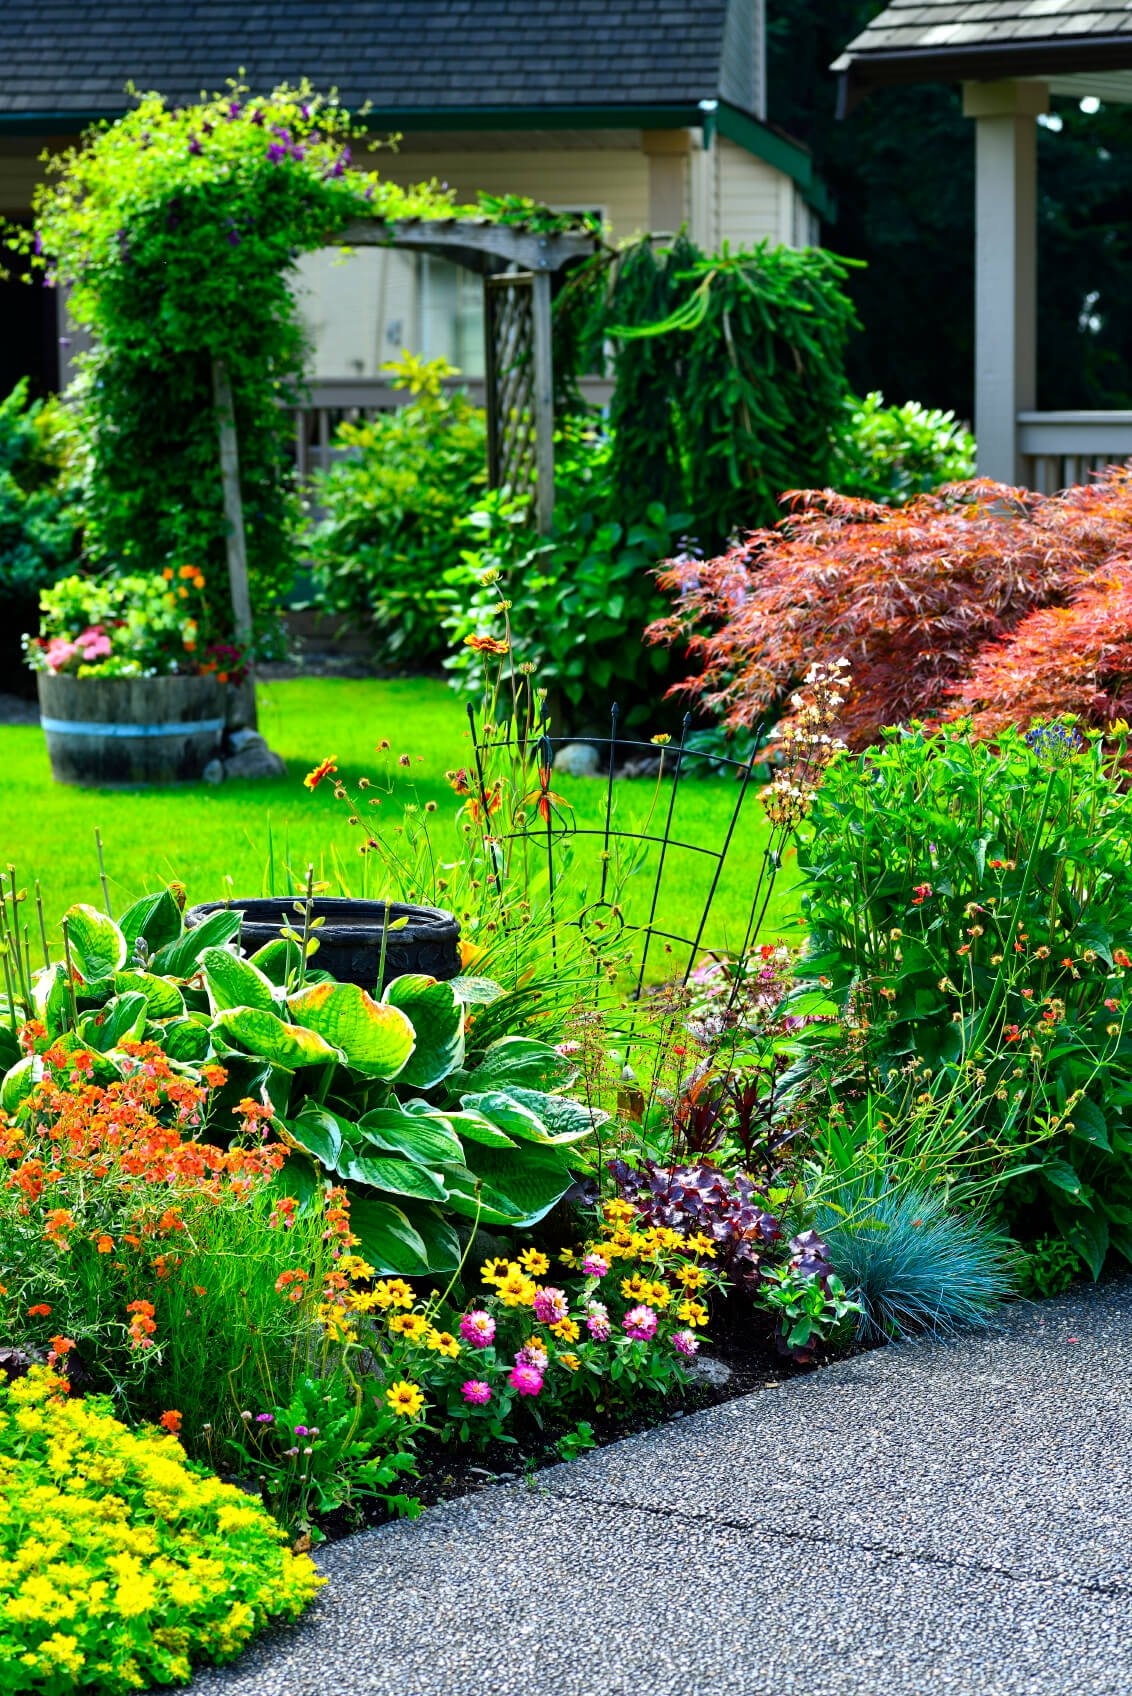 With a variety of flowers of different shapes, sizes, as well as colors, your flower bed can be a dynamic and interesting area. Different colors and shapes of the flowers cause your flowerbed to have a beautiful and wild look.